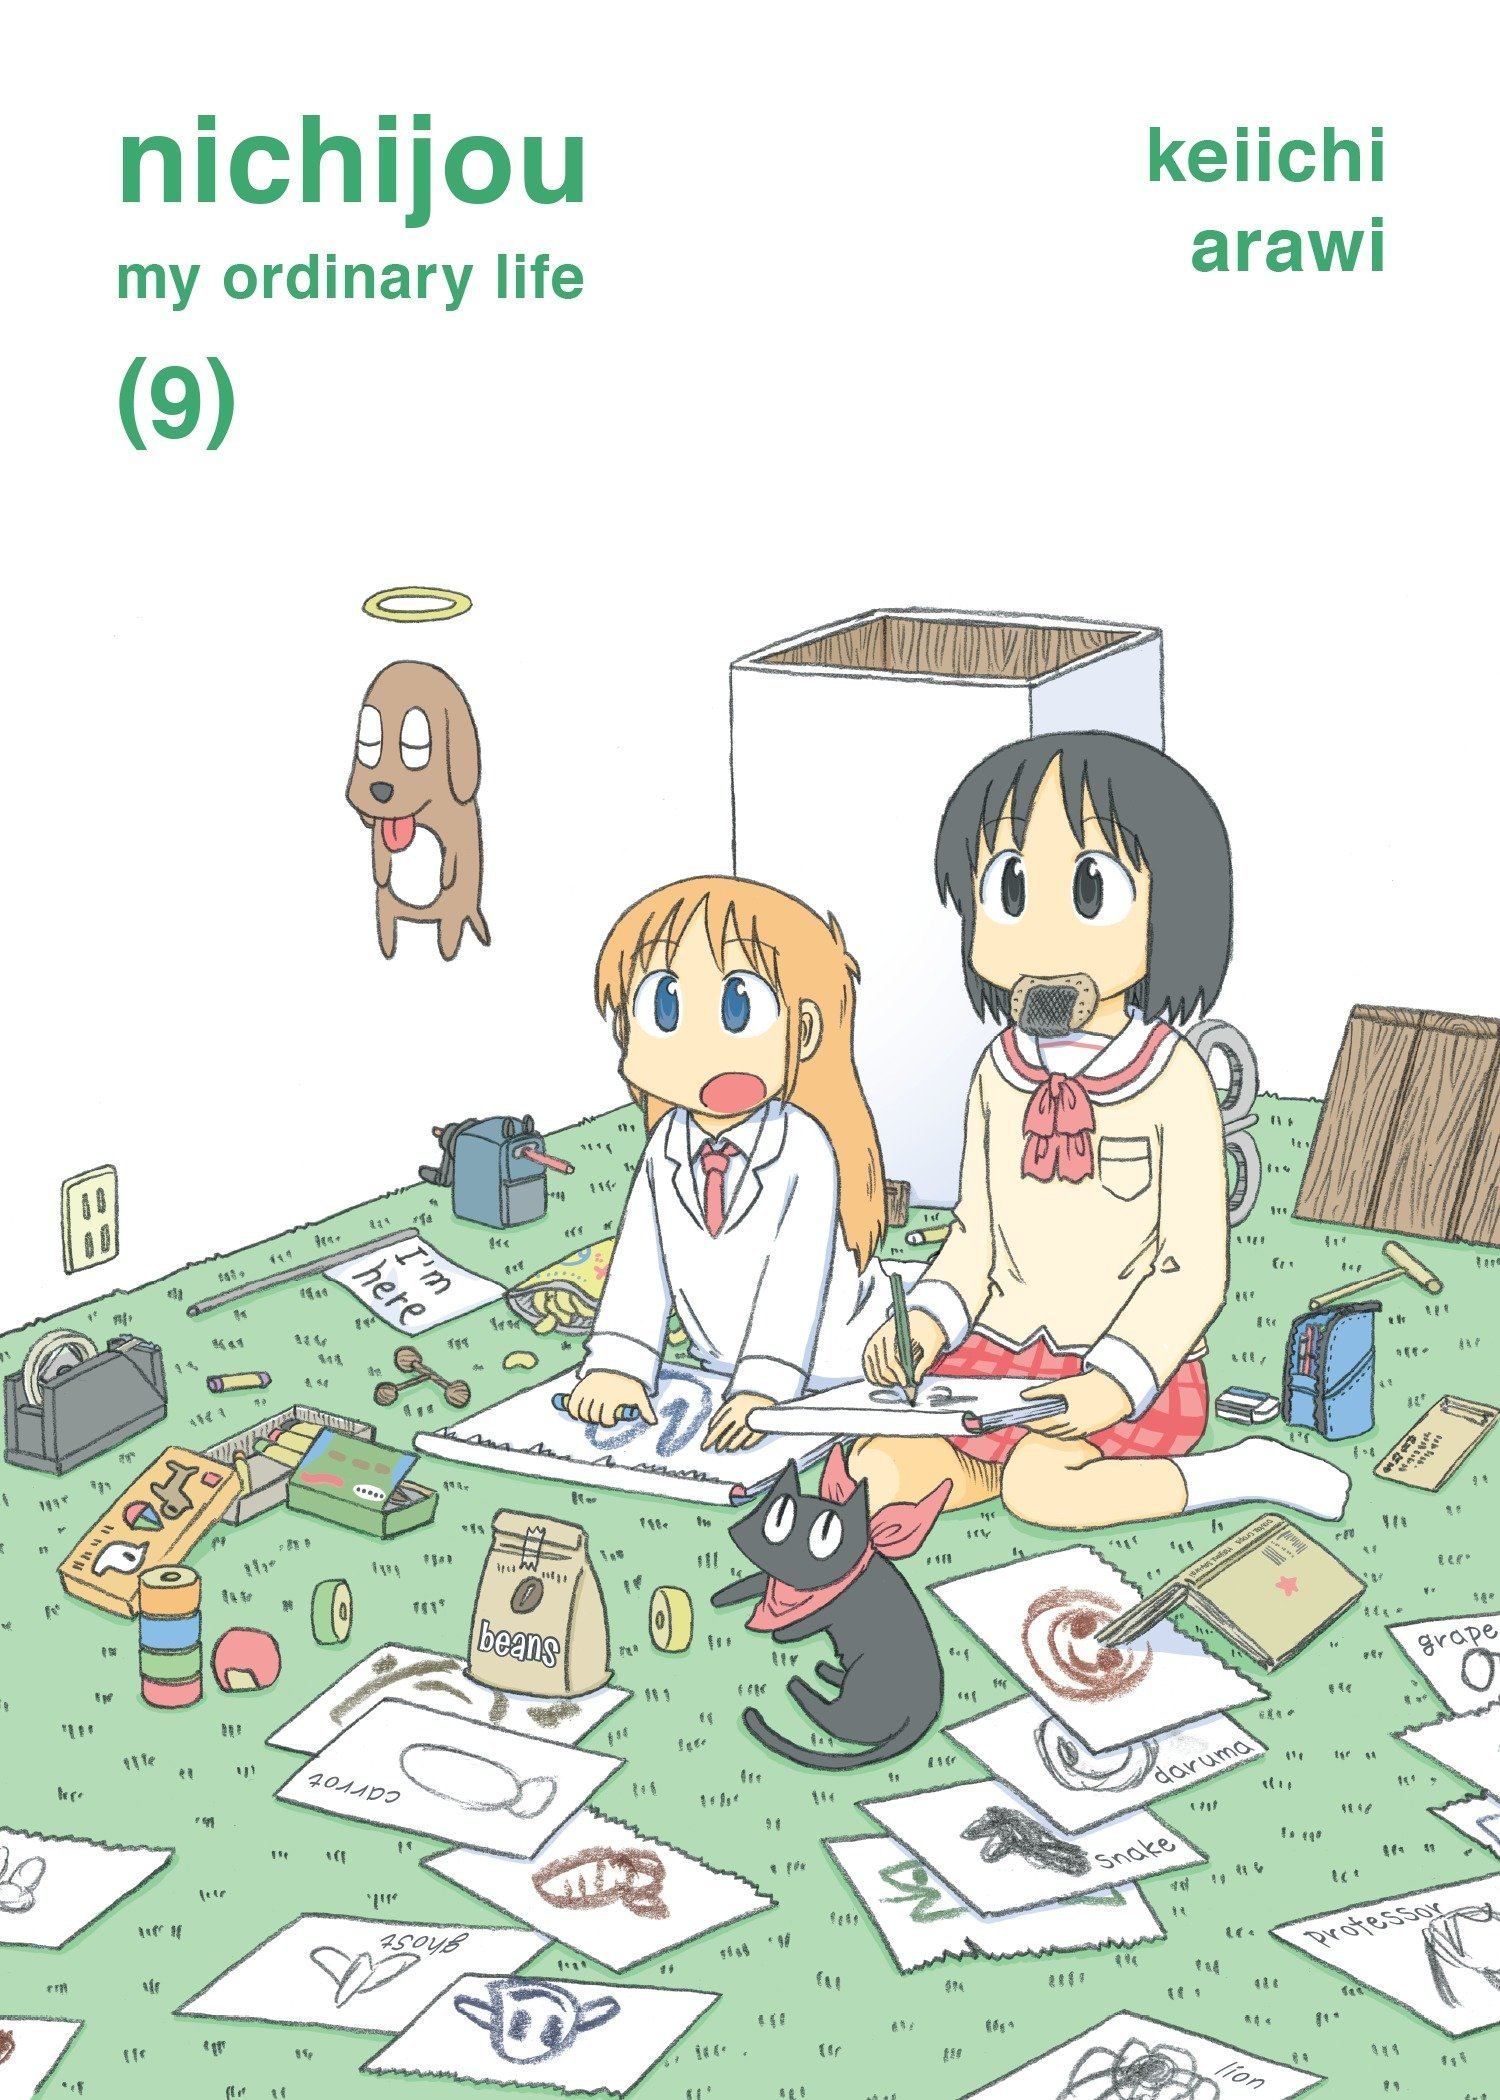 Nichijou, 9 by Vertical Comics